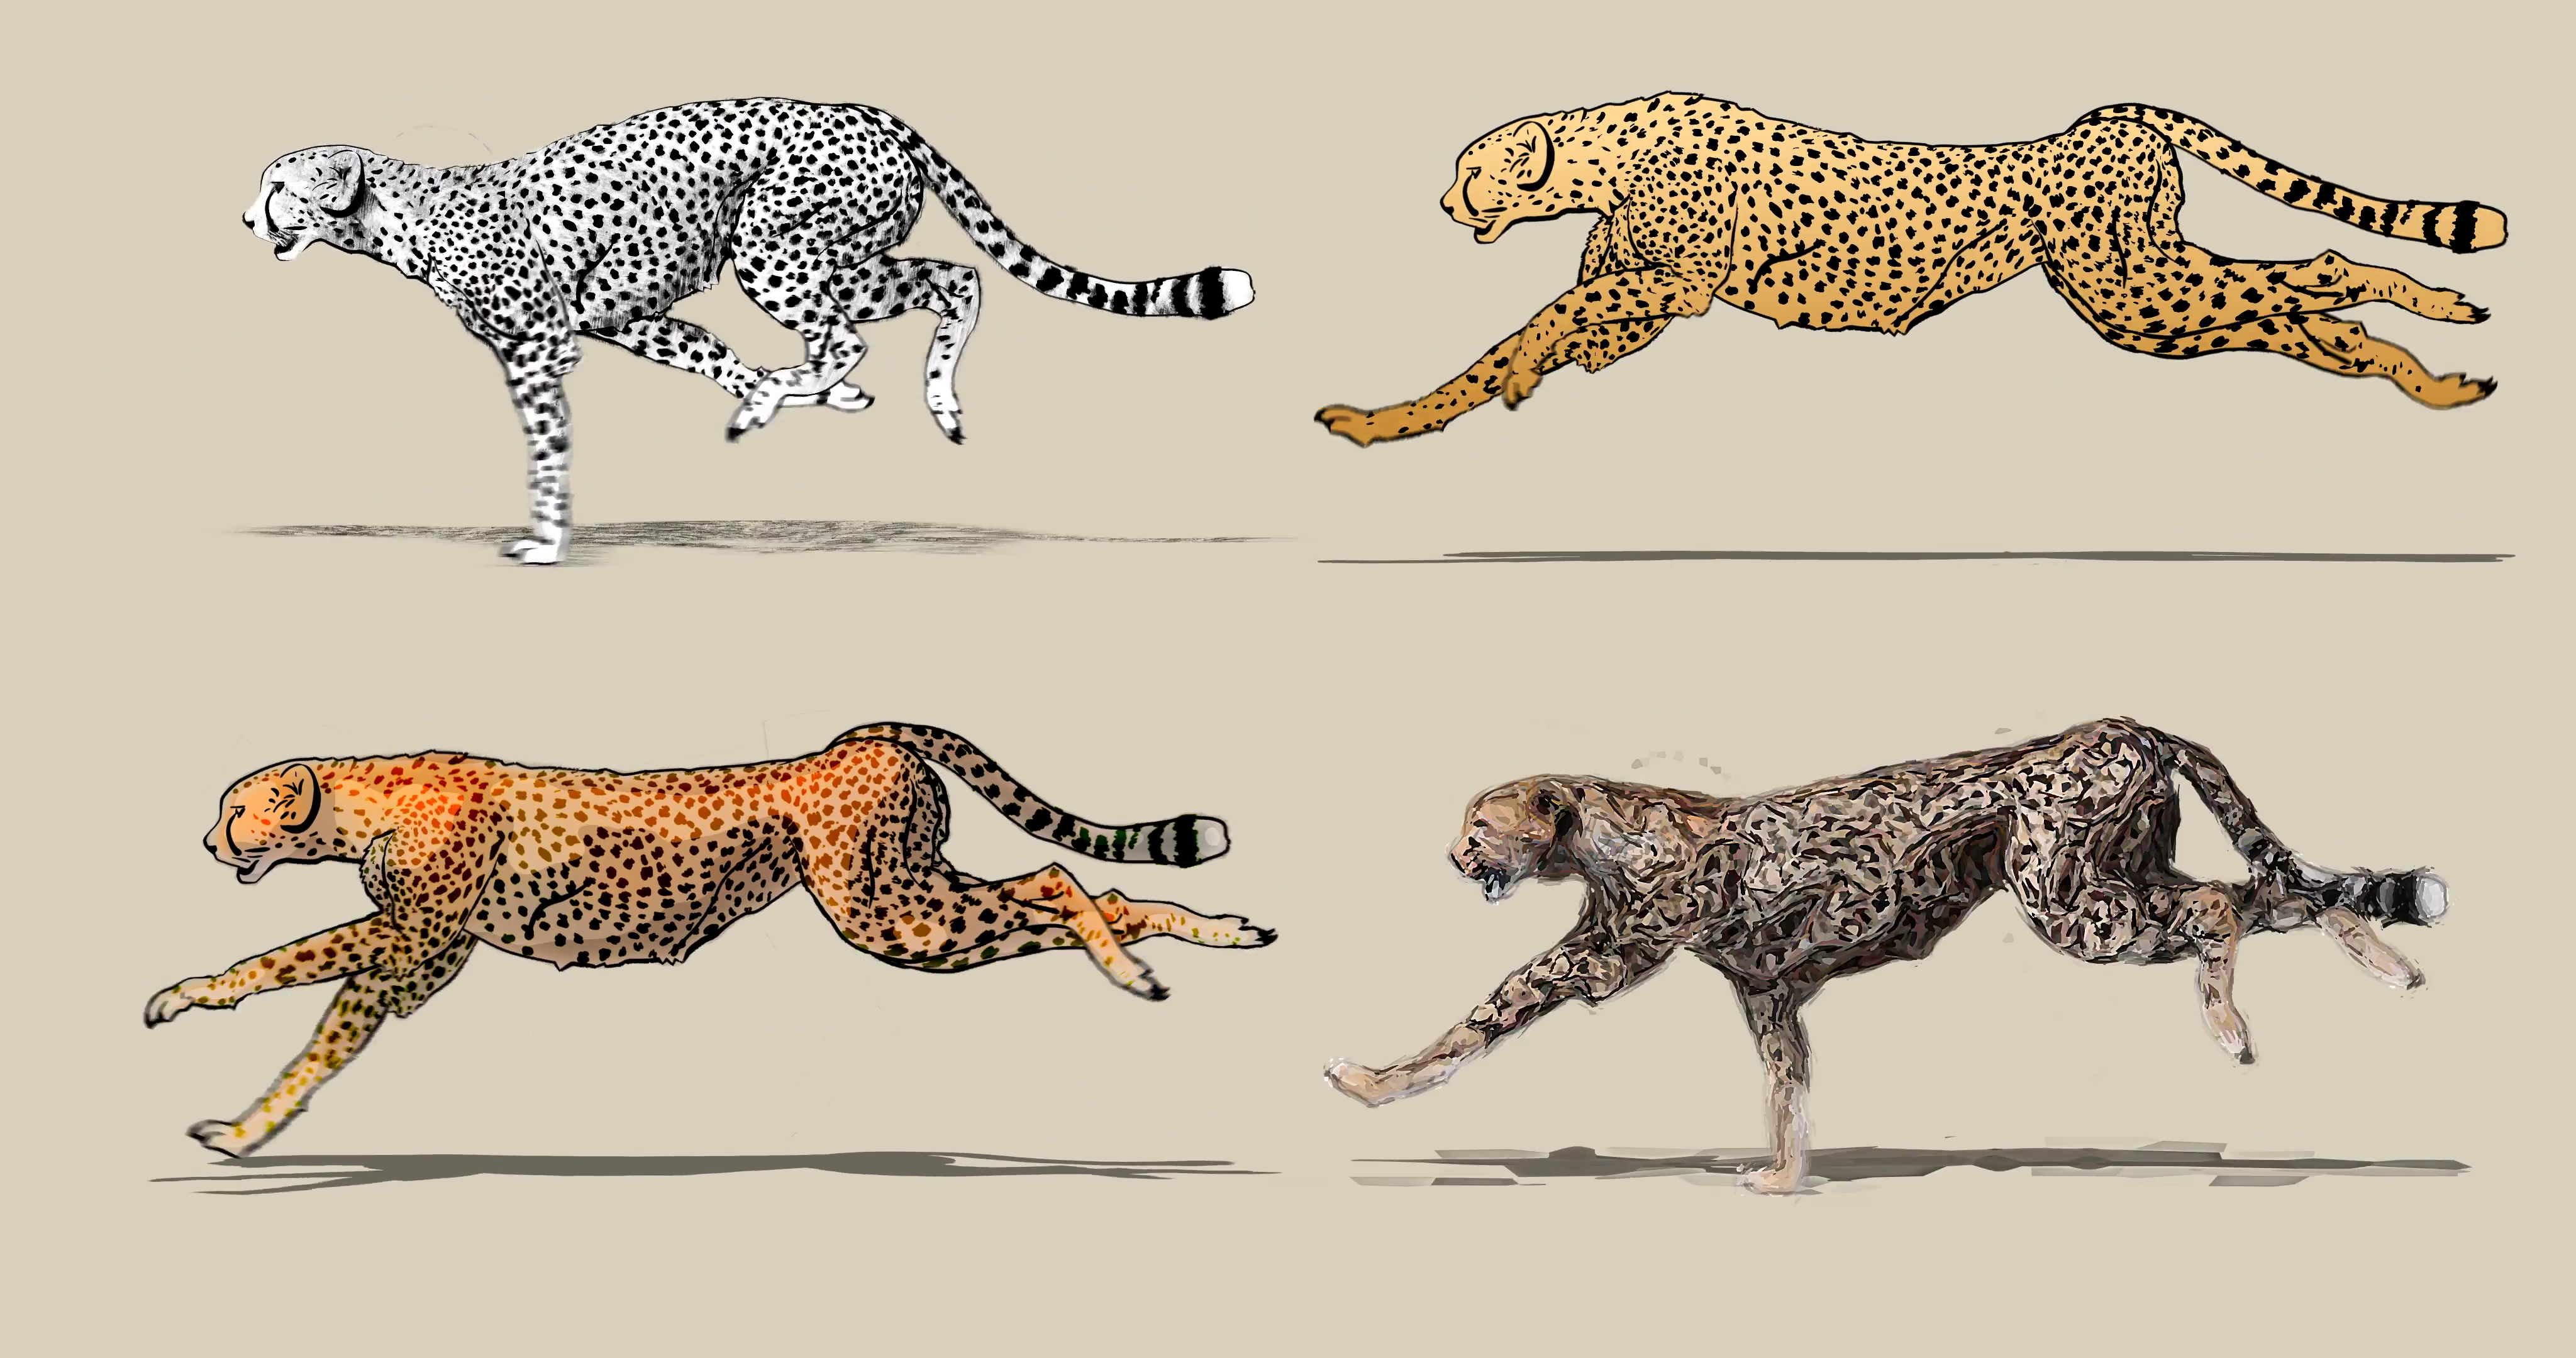 4096x2160 Cartoon Cheetah Running. Four Different Drawing Style Pencil